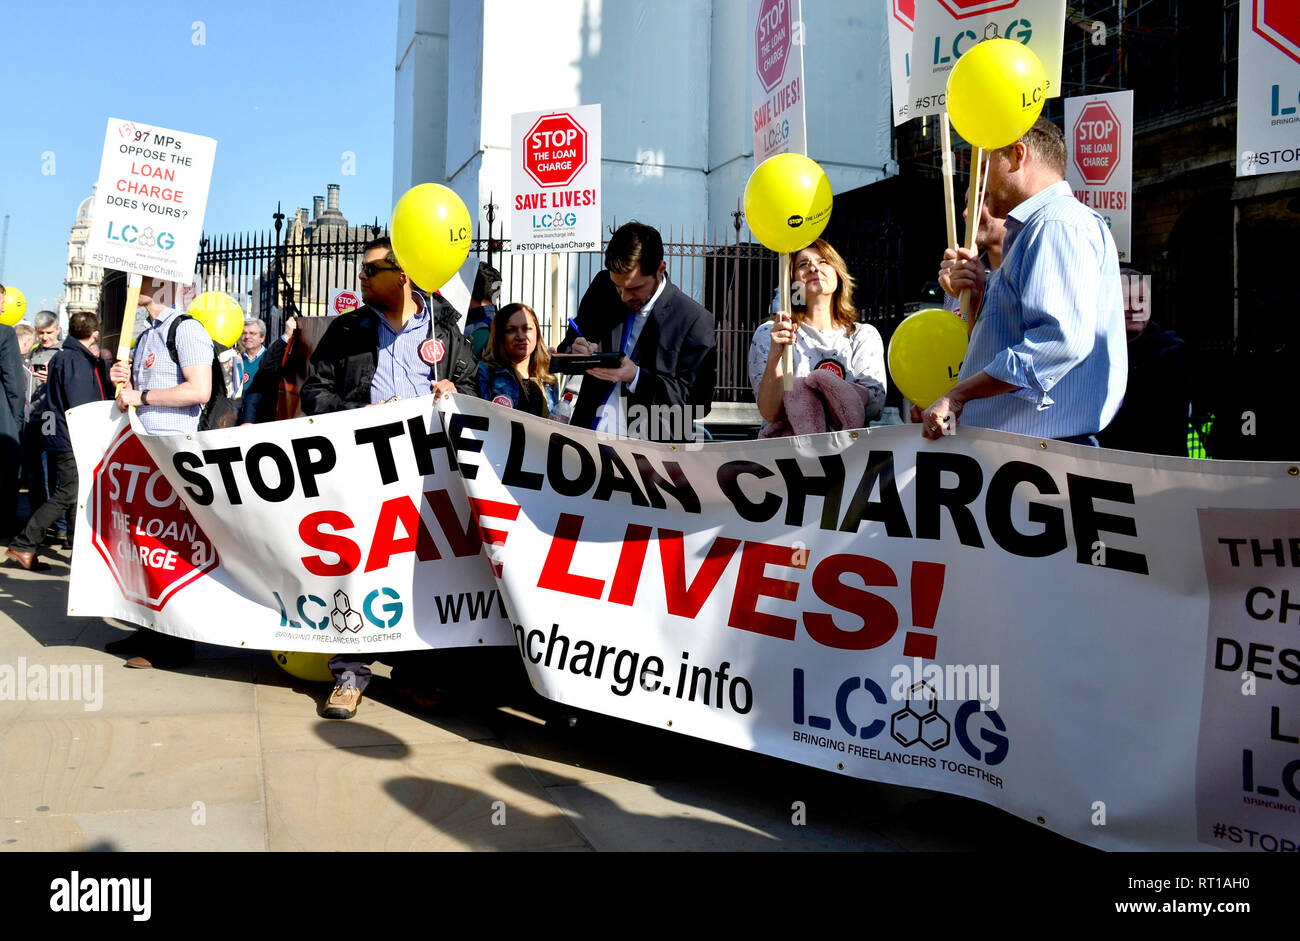 London, 27th Feb. The Loan Charge Action Group - formed to raise awareness of the retrospective tax charge introduced by HM Government in the 2017 Budget demonstrates outside Parliament Credit: PjrNews Stock Photo